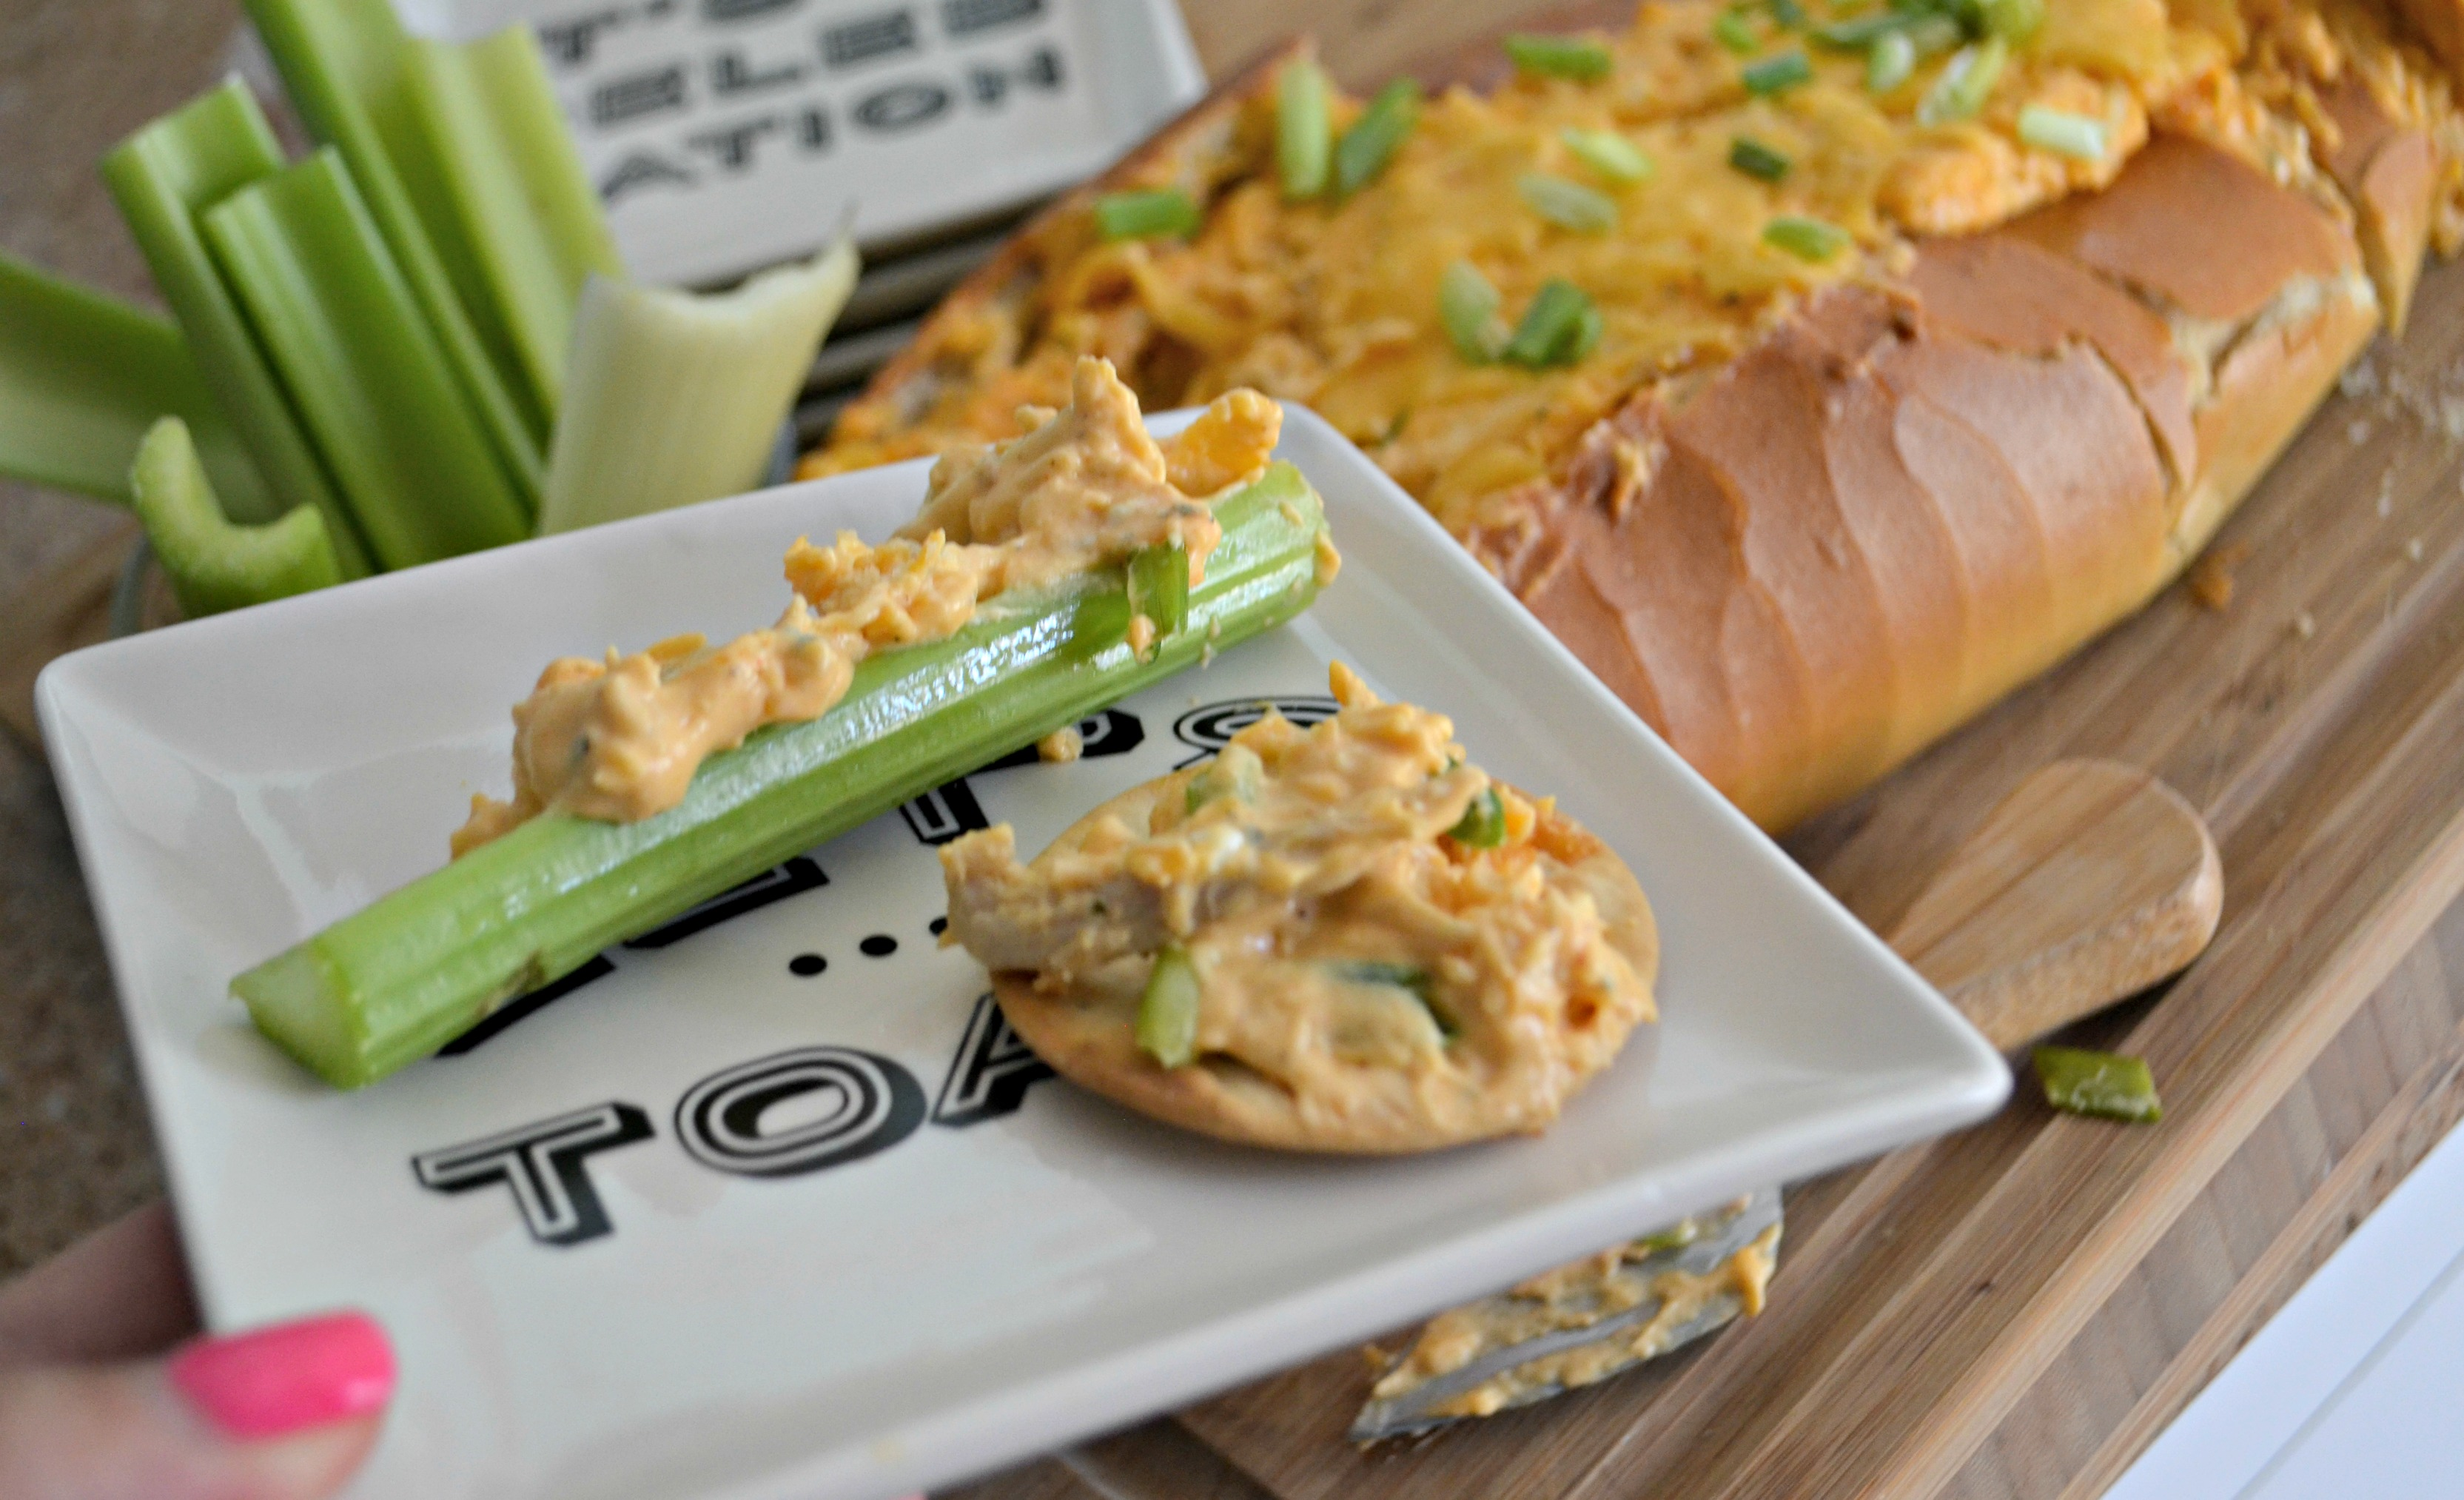 Buffalo Chicken Dip Bread Bowl - served on celery and a cracker